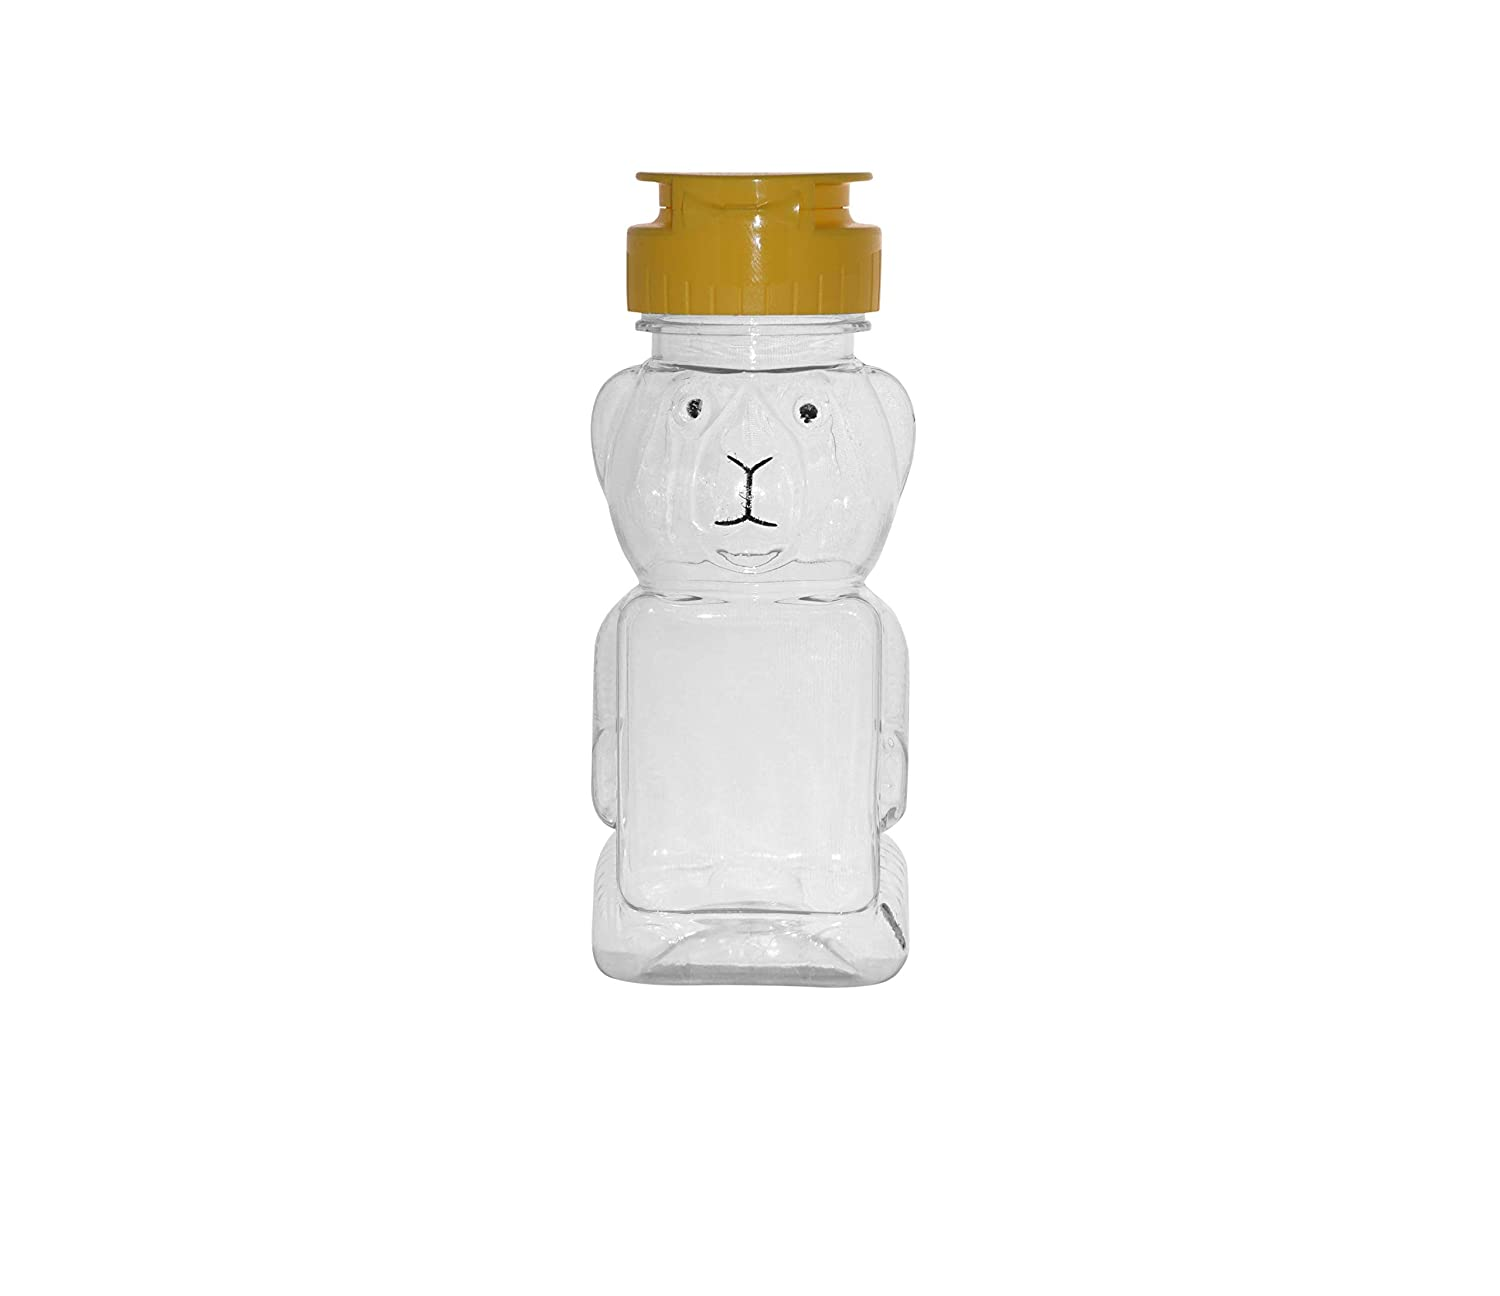 WM (Pack of 6) 6 fl oz (8 oz of honey) Refillable, Reusable, Empty Clear PET Honey Bear Plastic Bottles w/Yellow Flip Top Lined Caps WolfMoon